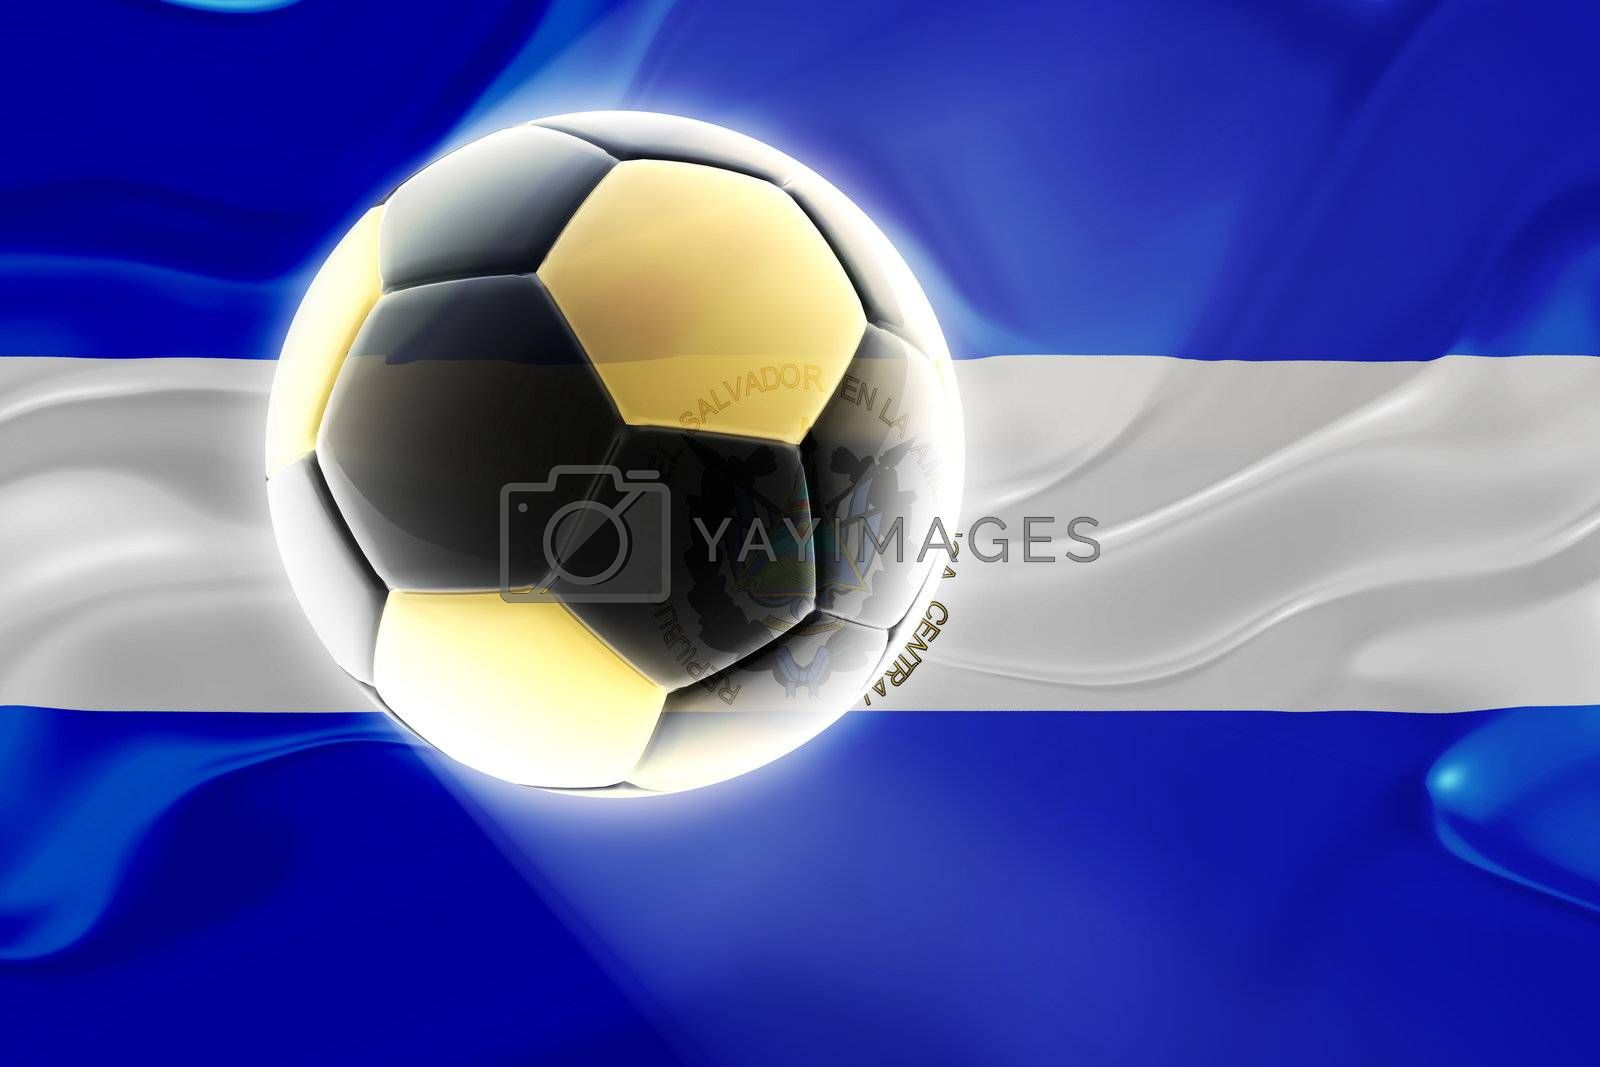 Flag of El Salvador, national country symbol illustration wavy fabric sports soccer football